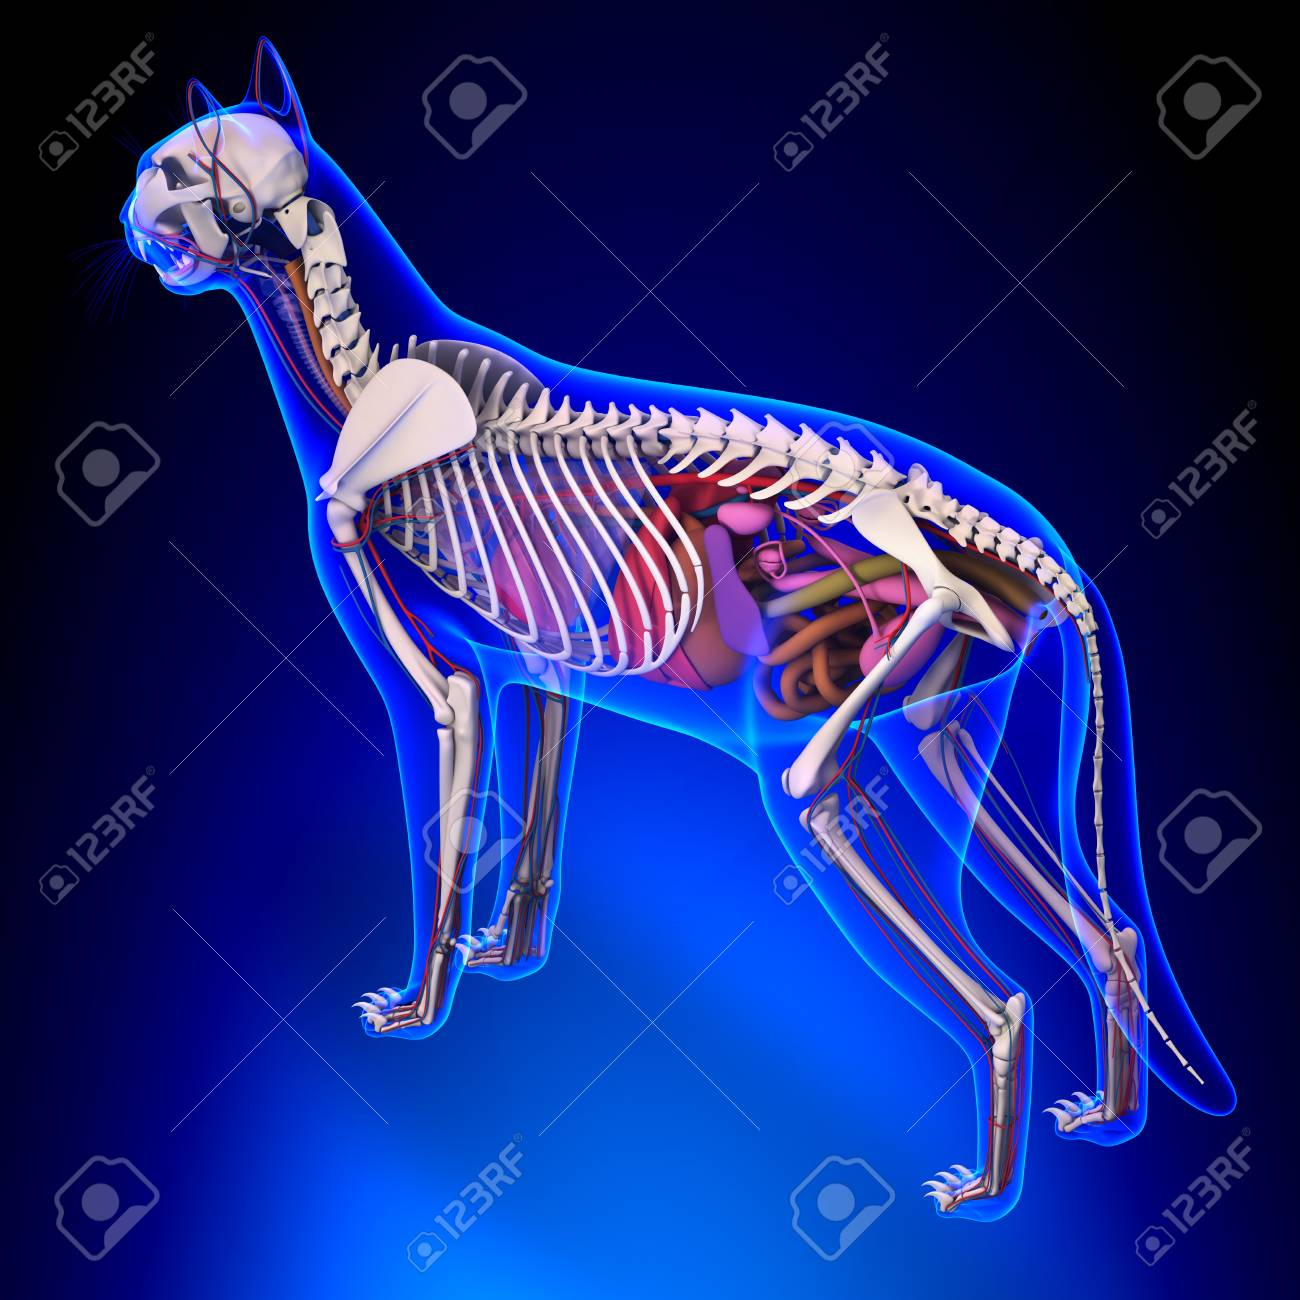 Cat Anatomy - Internal Anatomy Of A Cat Stock Photo, Picture And ...